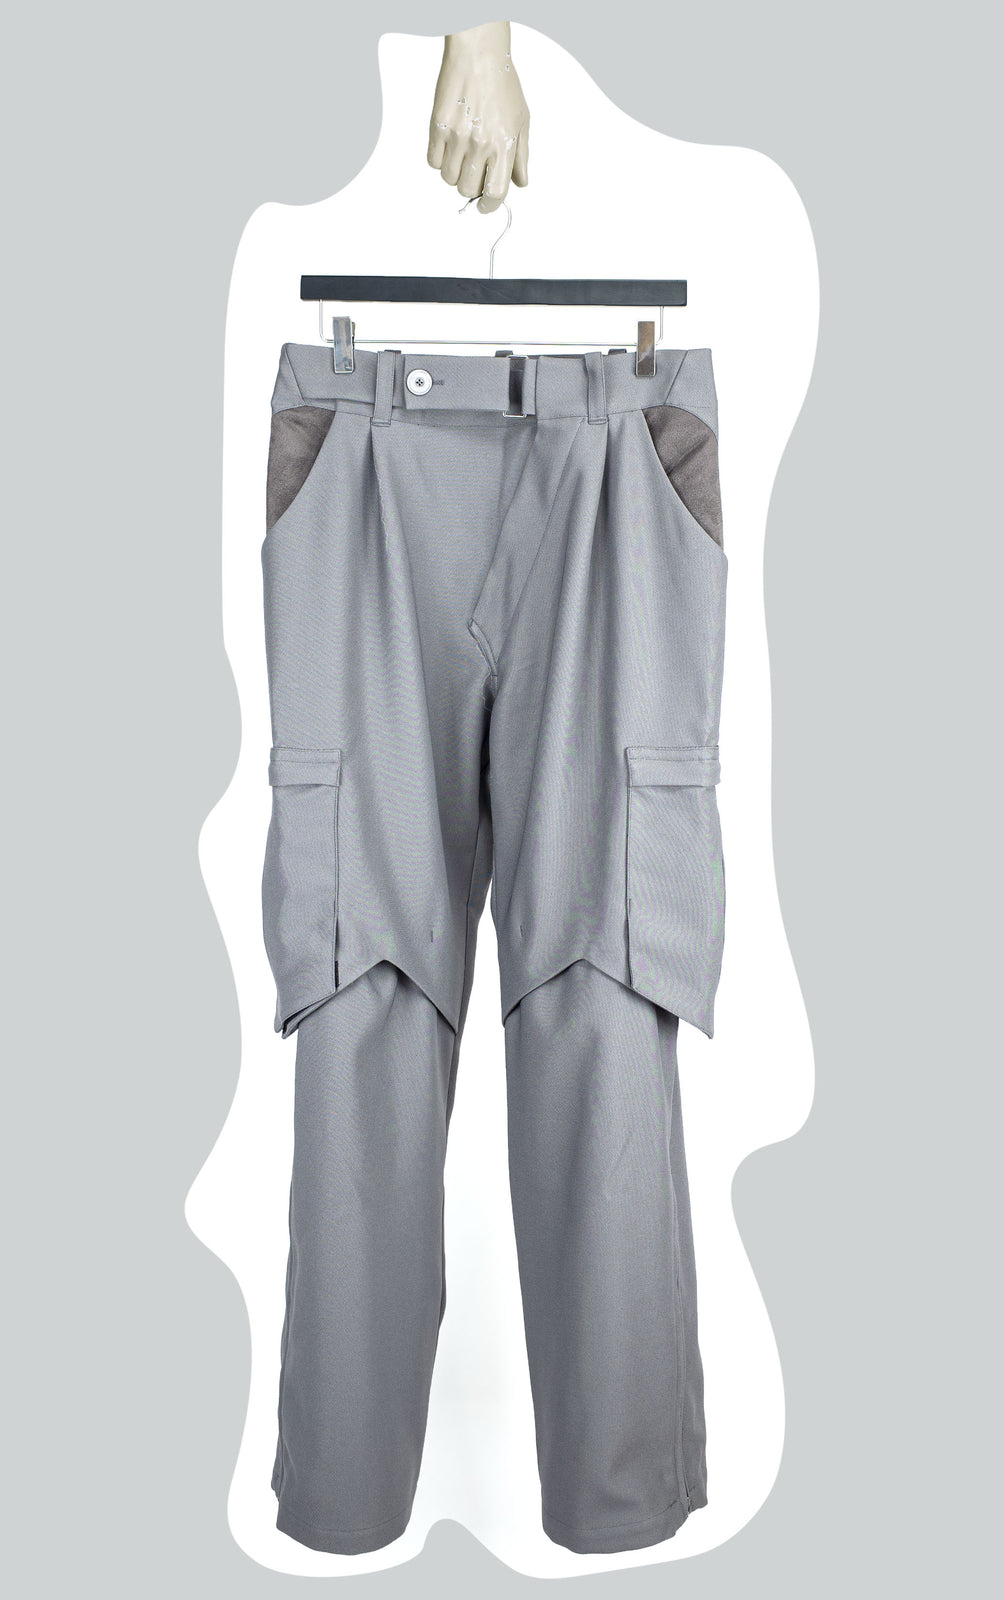 KIKO KOSTADINOV 00092020 BINDRA CARGO TROUSERS GREY